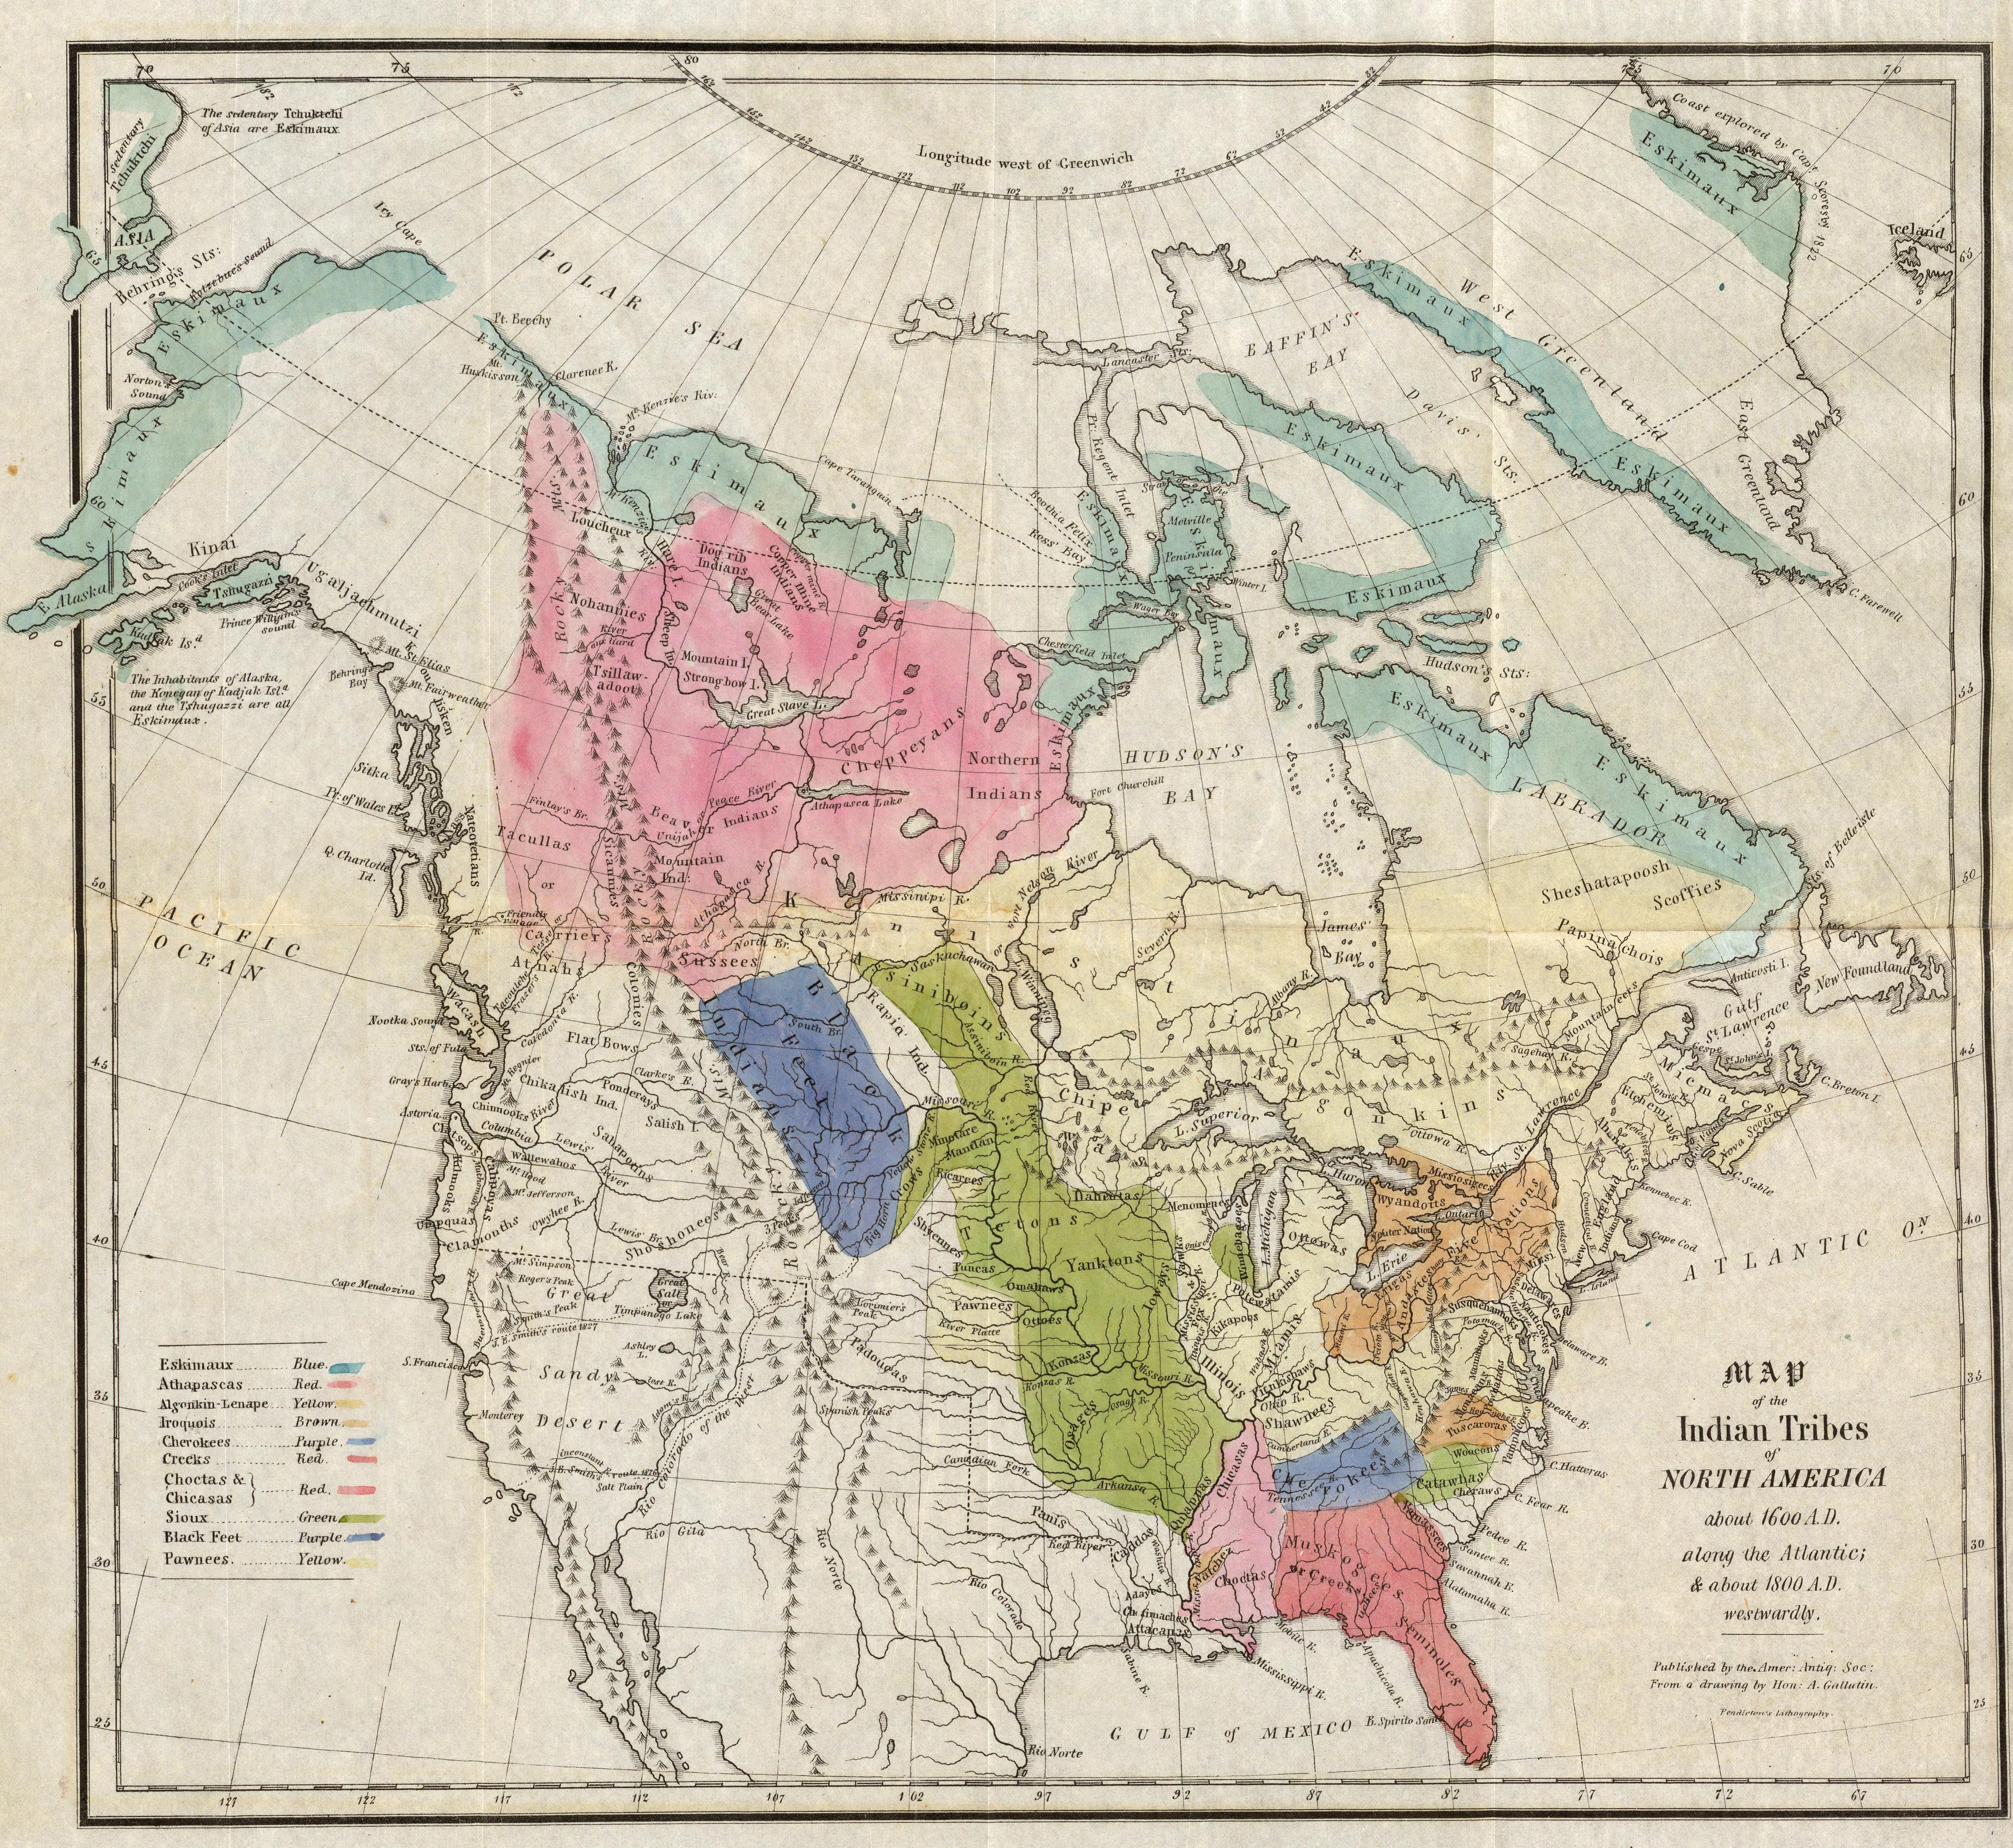 A Synopsis Of The Indian Tribes Within The United States East Of - Map of native american banks in us